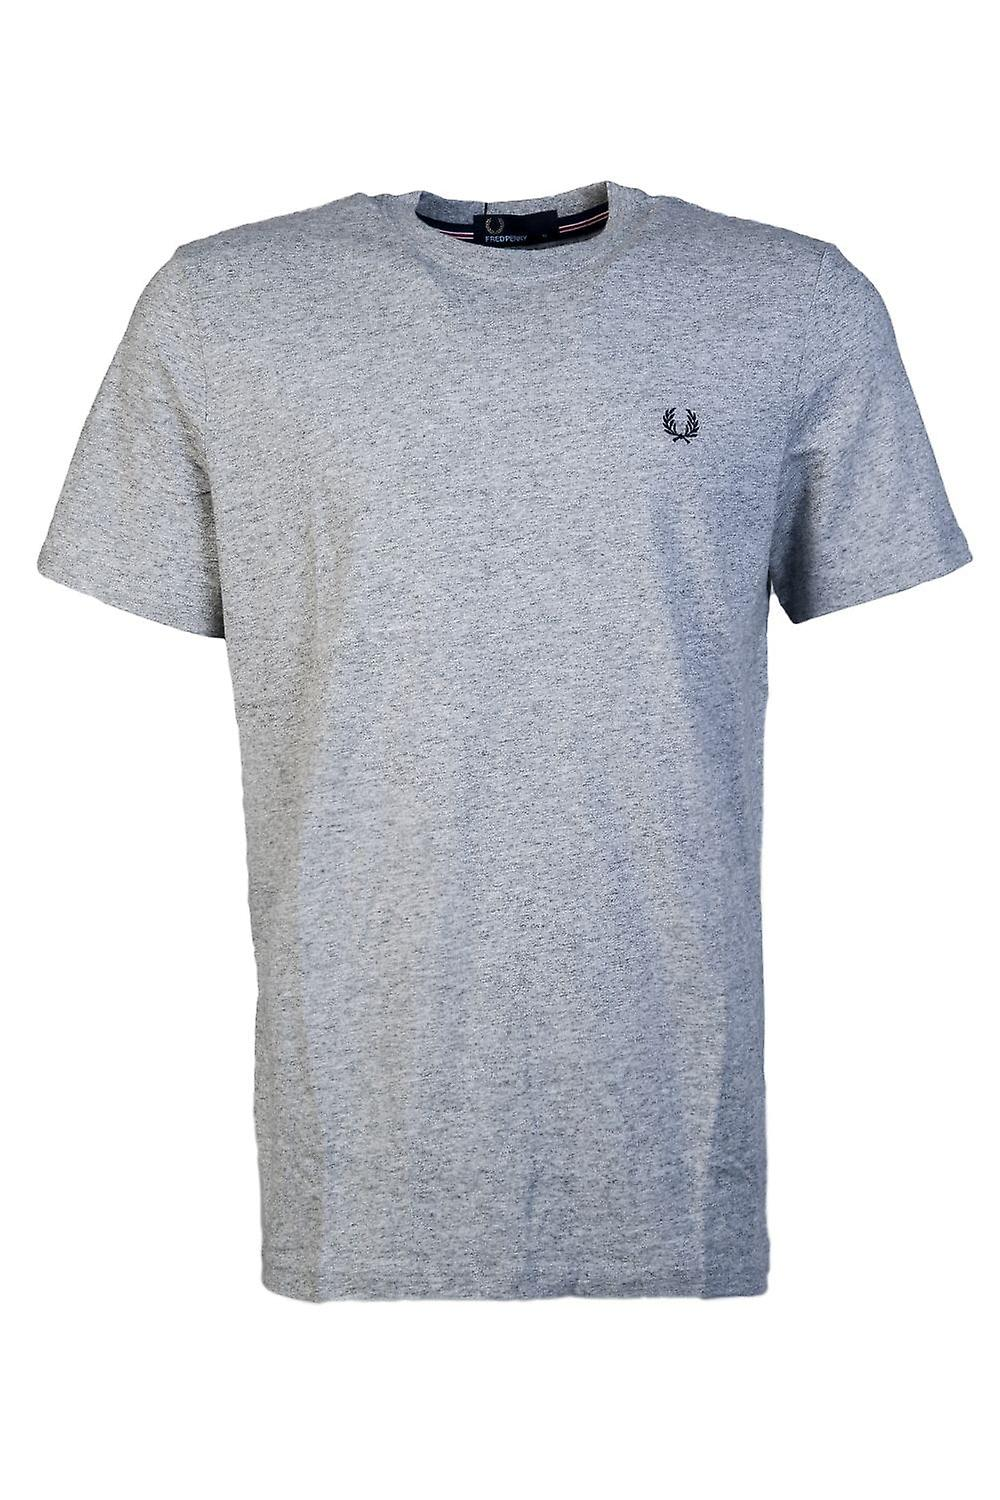 Fred Perry Round Neck T Shirt M6334